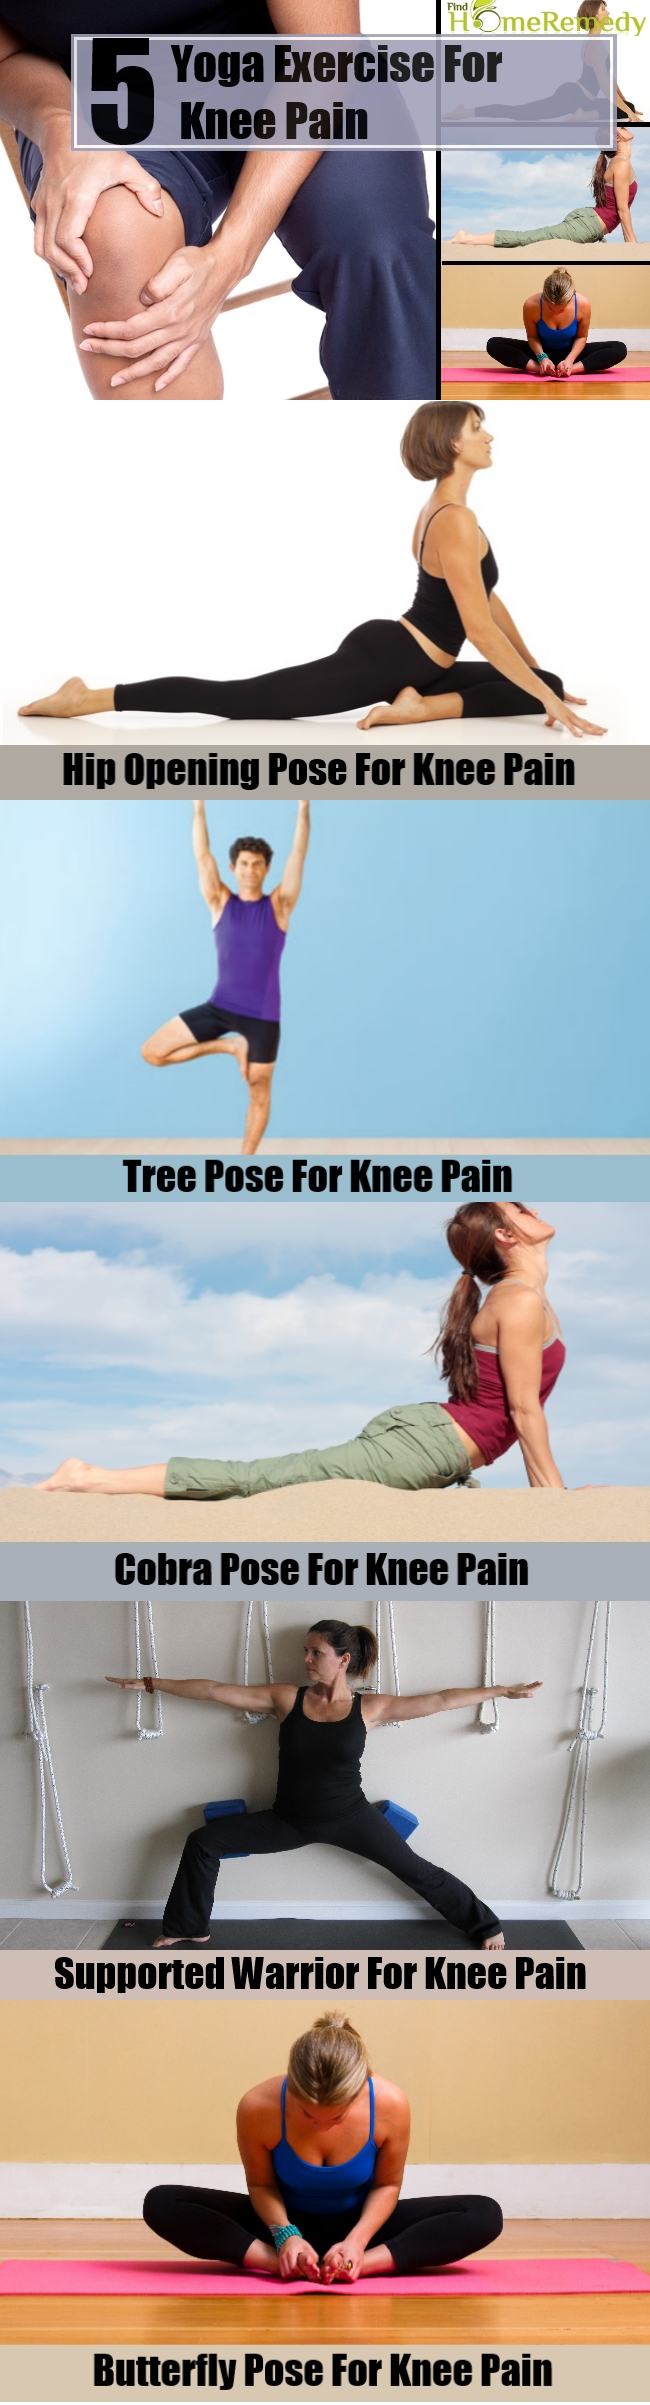 5 Yoga Exercise For Knee Pain